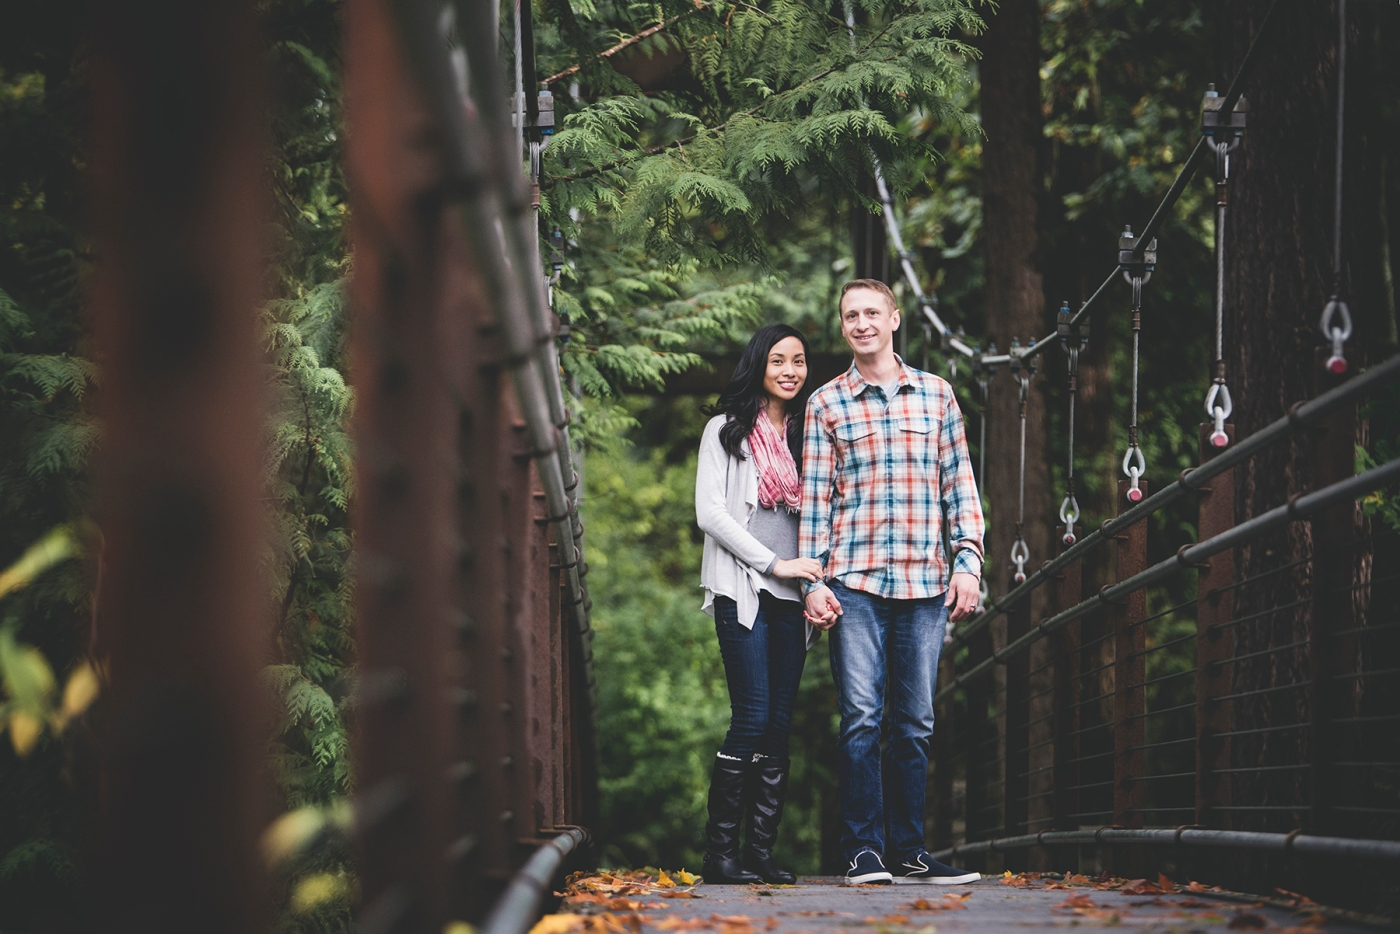 jane-speleers-photography-ju-bri-holiday-october-bellevue-botanical-garden-engagement-2016_dsc_5725